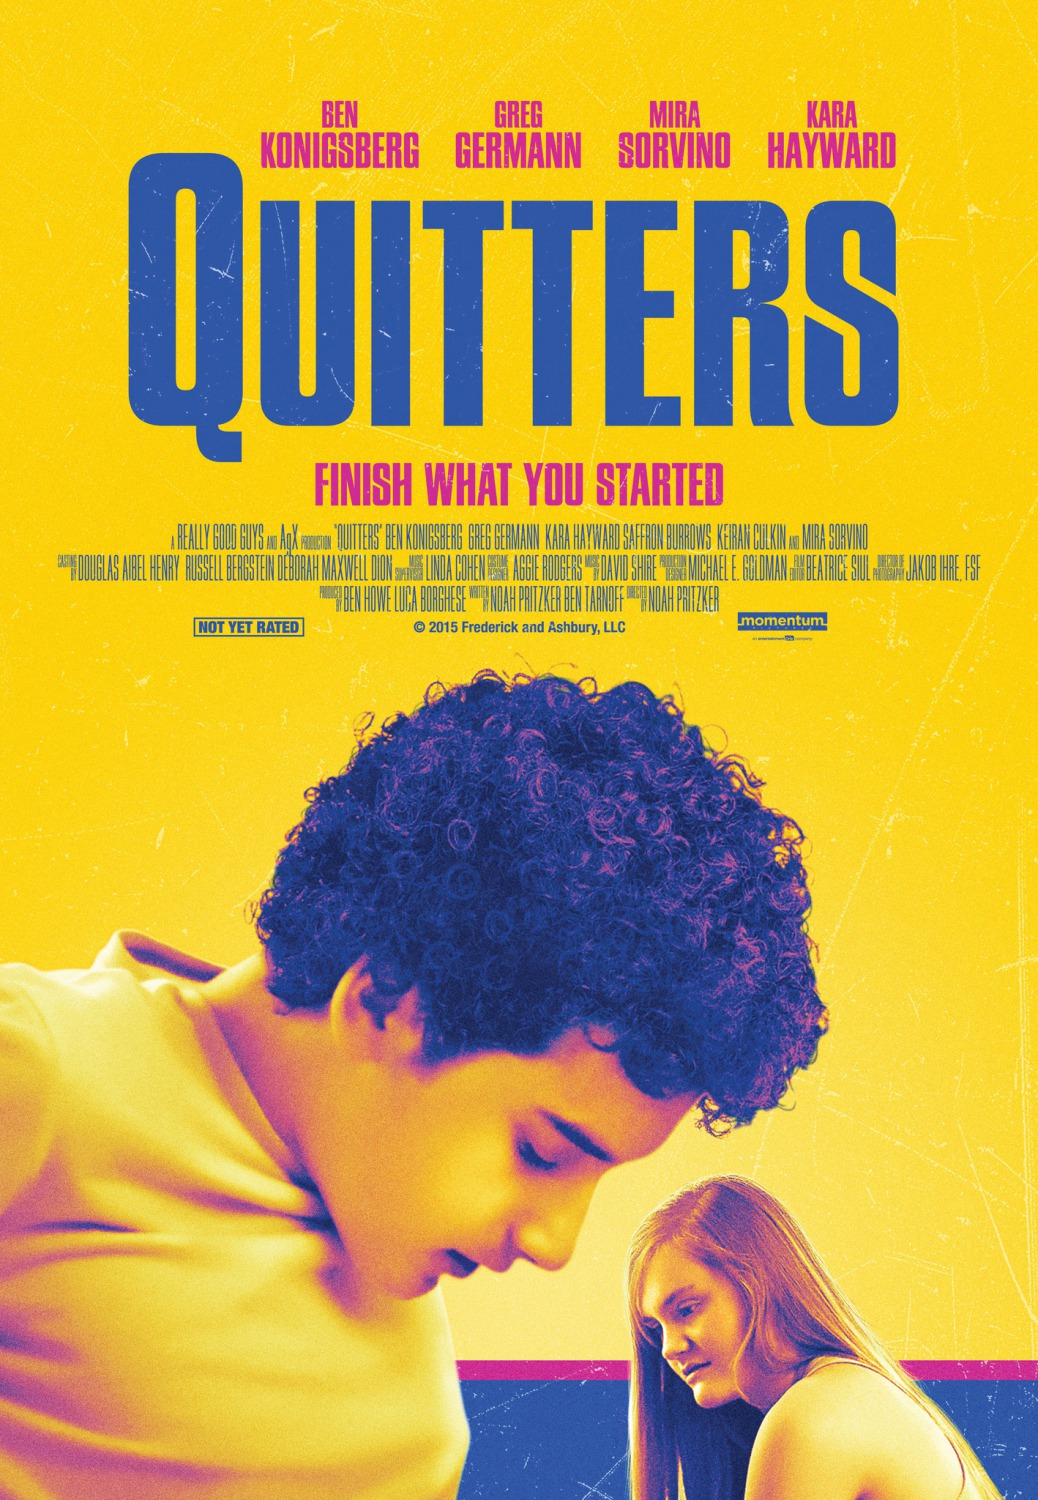 Filme Rayman for quitters - film 2015 - filmstarts.de